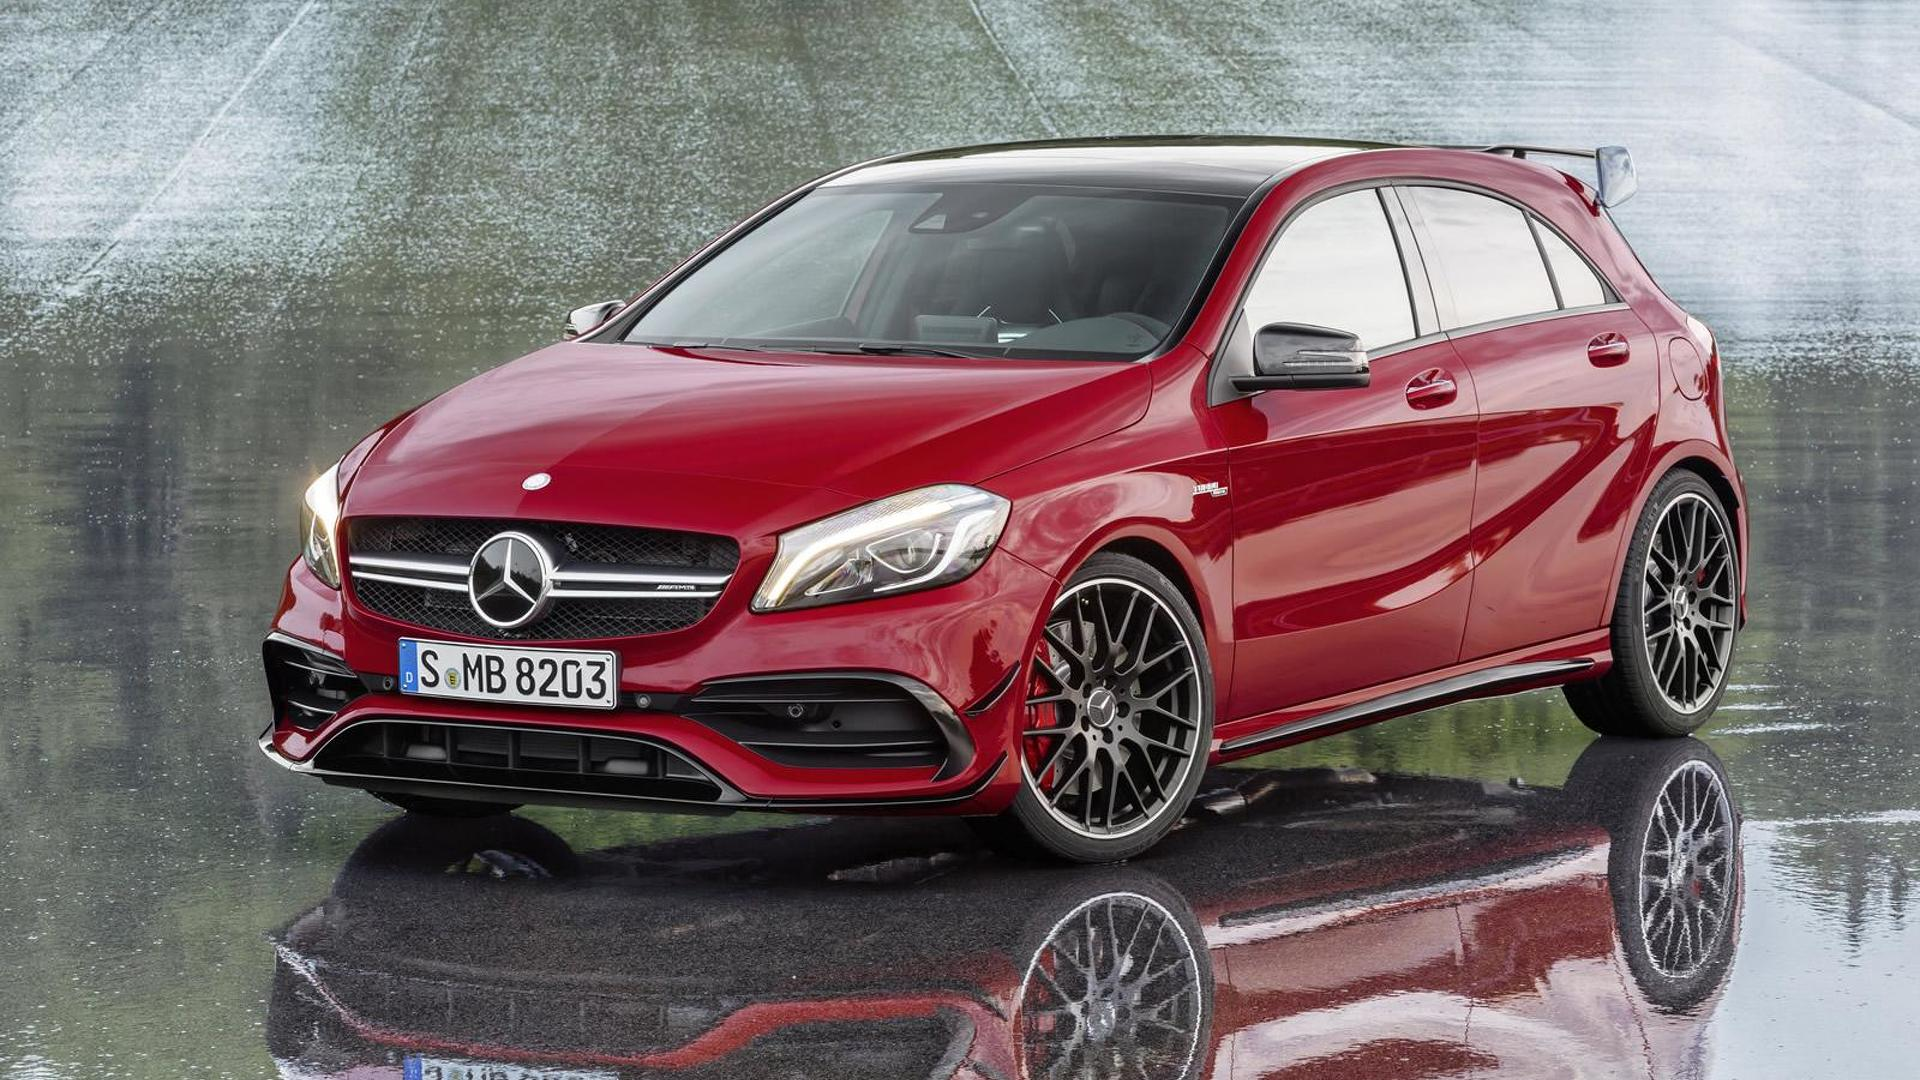 Next-gen Mercedes-AMG A45 to get power boost to over 400 hp